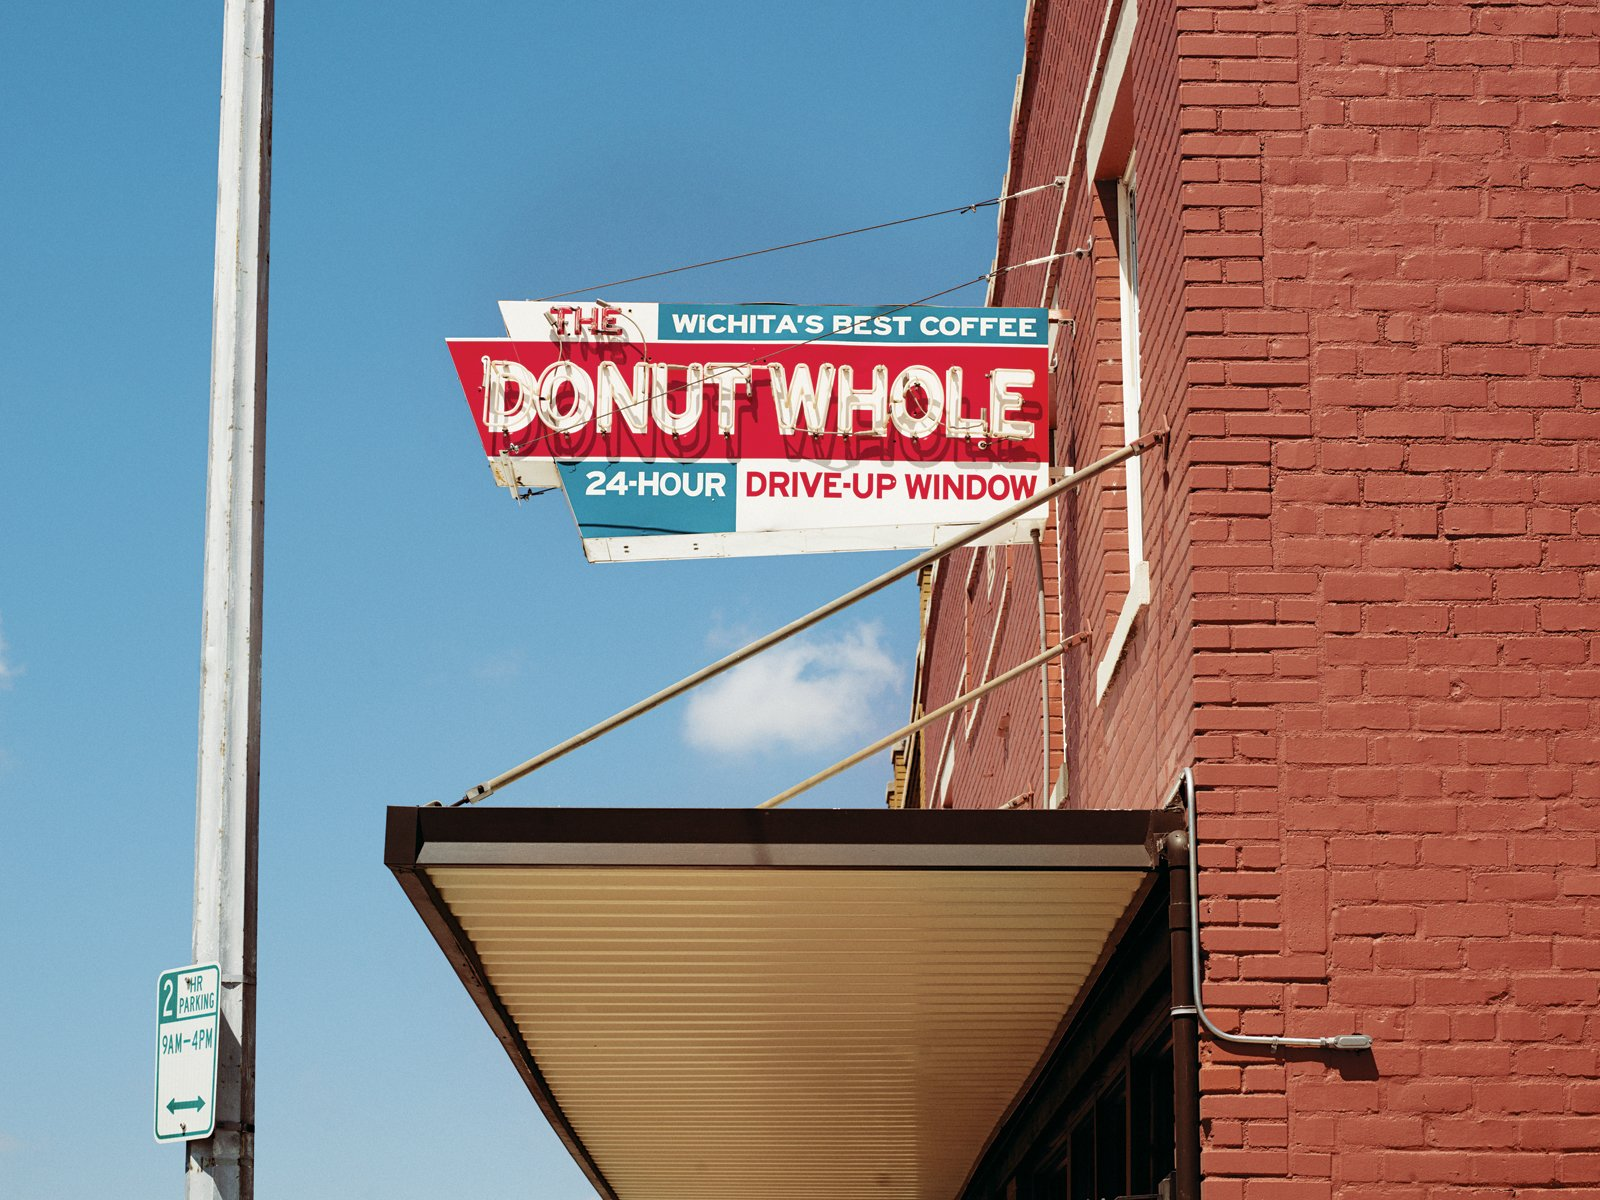 Wichitans satisfy their sweet tooth at the Donut Whole, which serves more than 25 varieties of donuts every day.